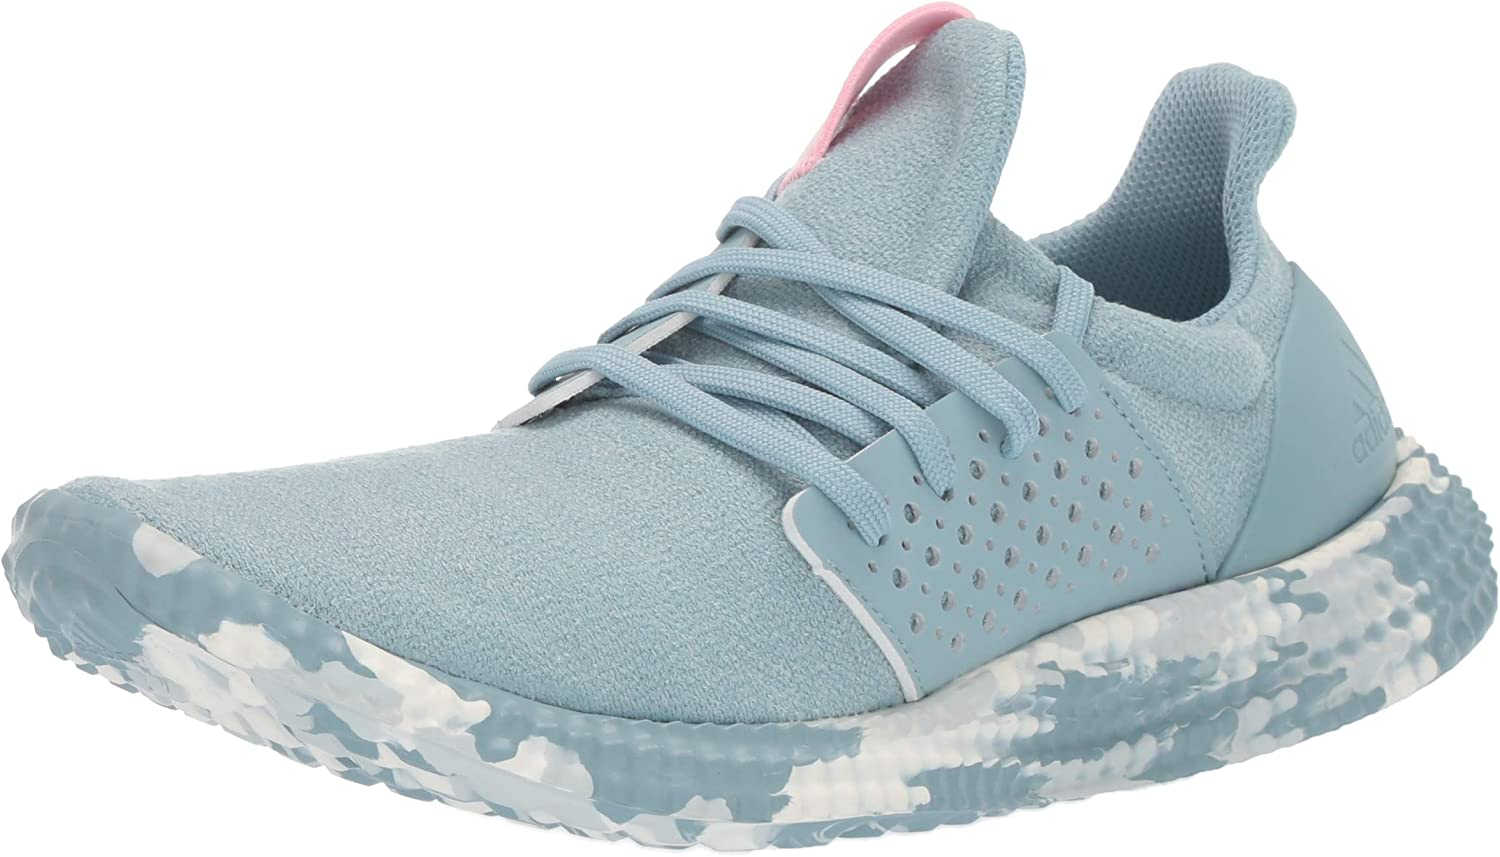 adidas Womens Athletics 247 Trainer Running Sneakers Shoes - Grey